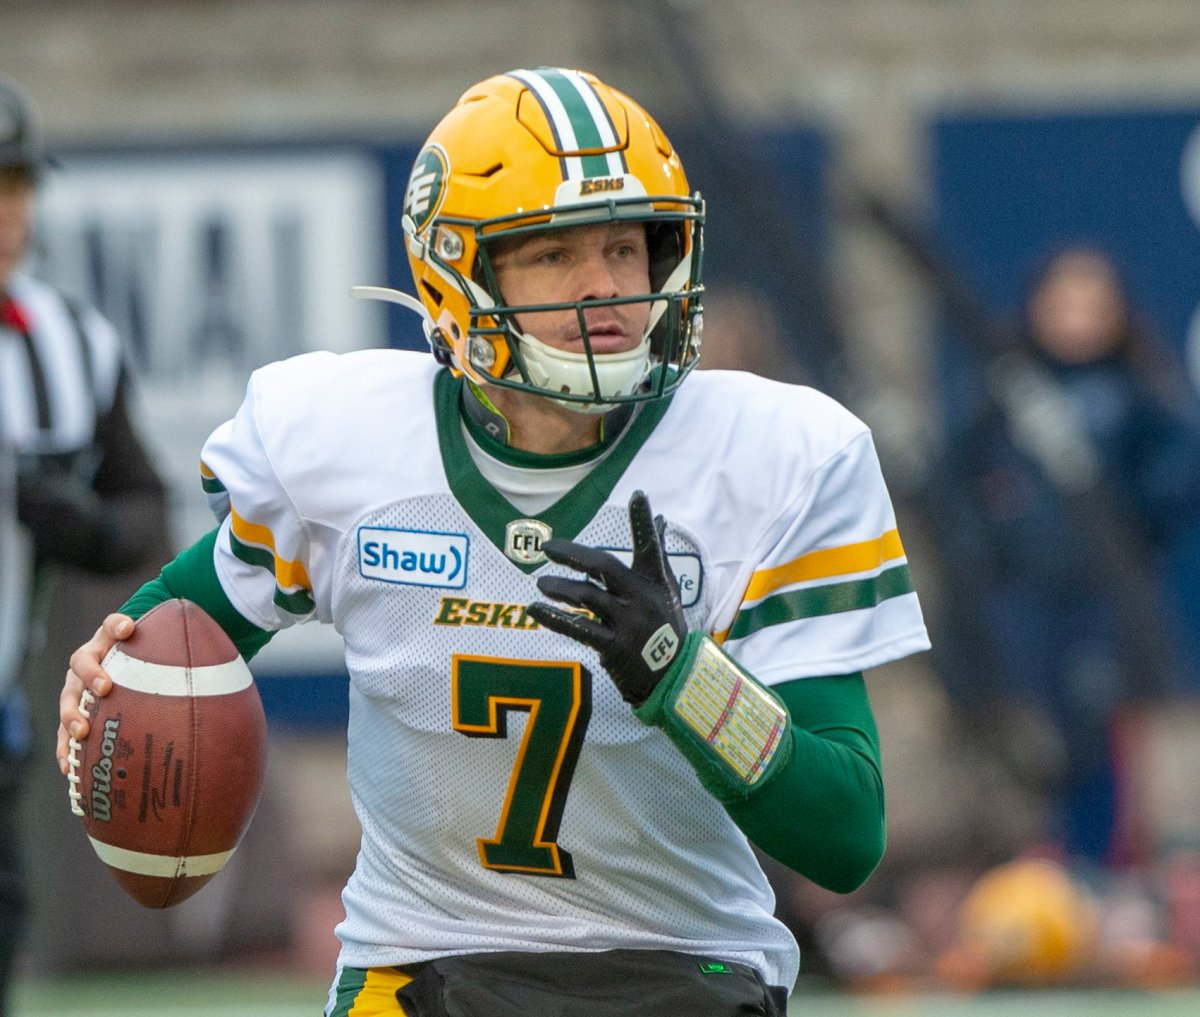 Edmonton Eskimos quarterback Trevor Harris (7) looks for an open receiver Montreal Alouettes during first quarter CFL East Semifinal football action Sunday, November 10, 2019 in Montreal.